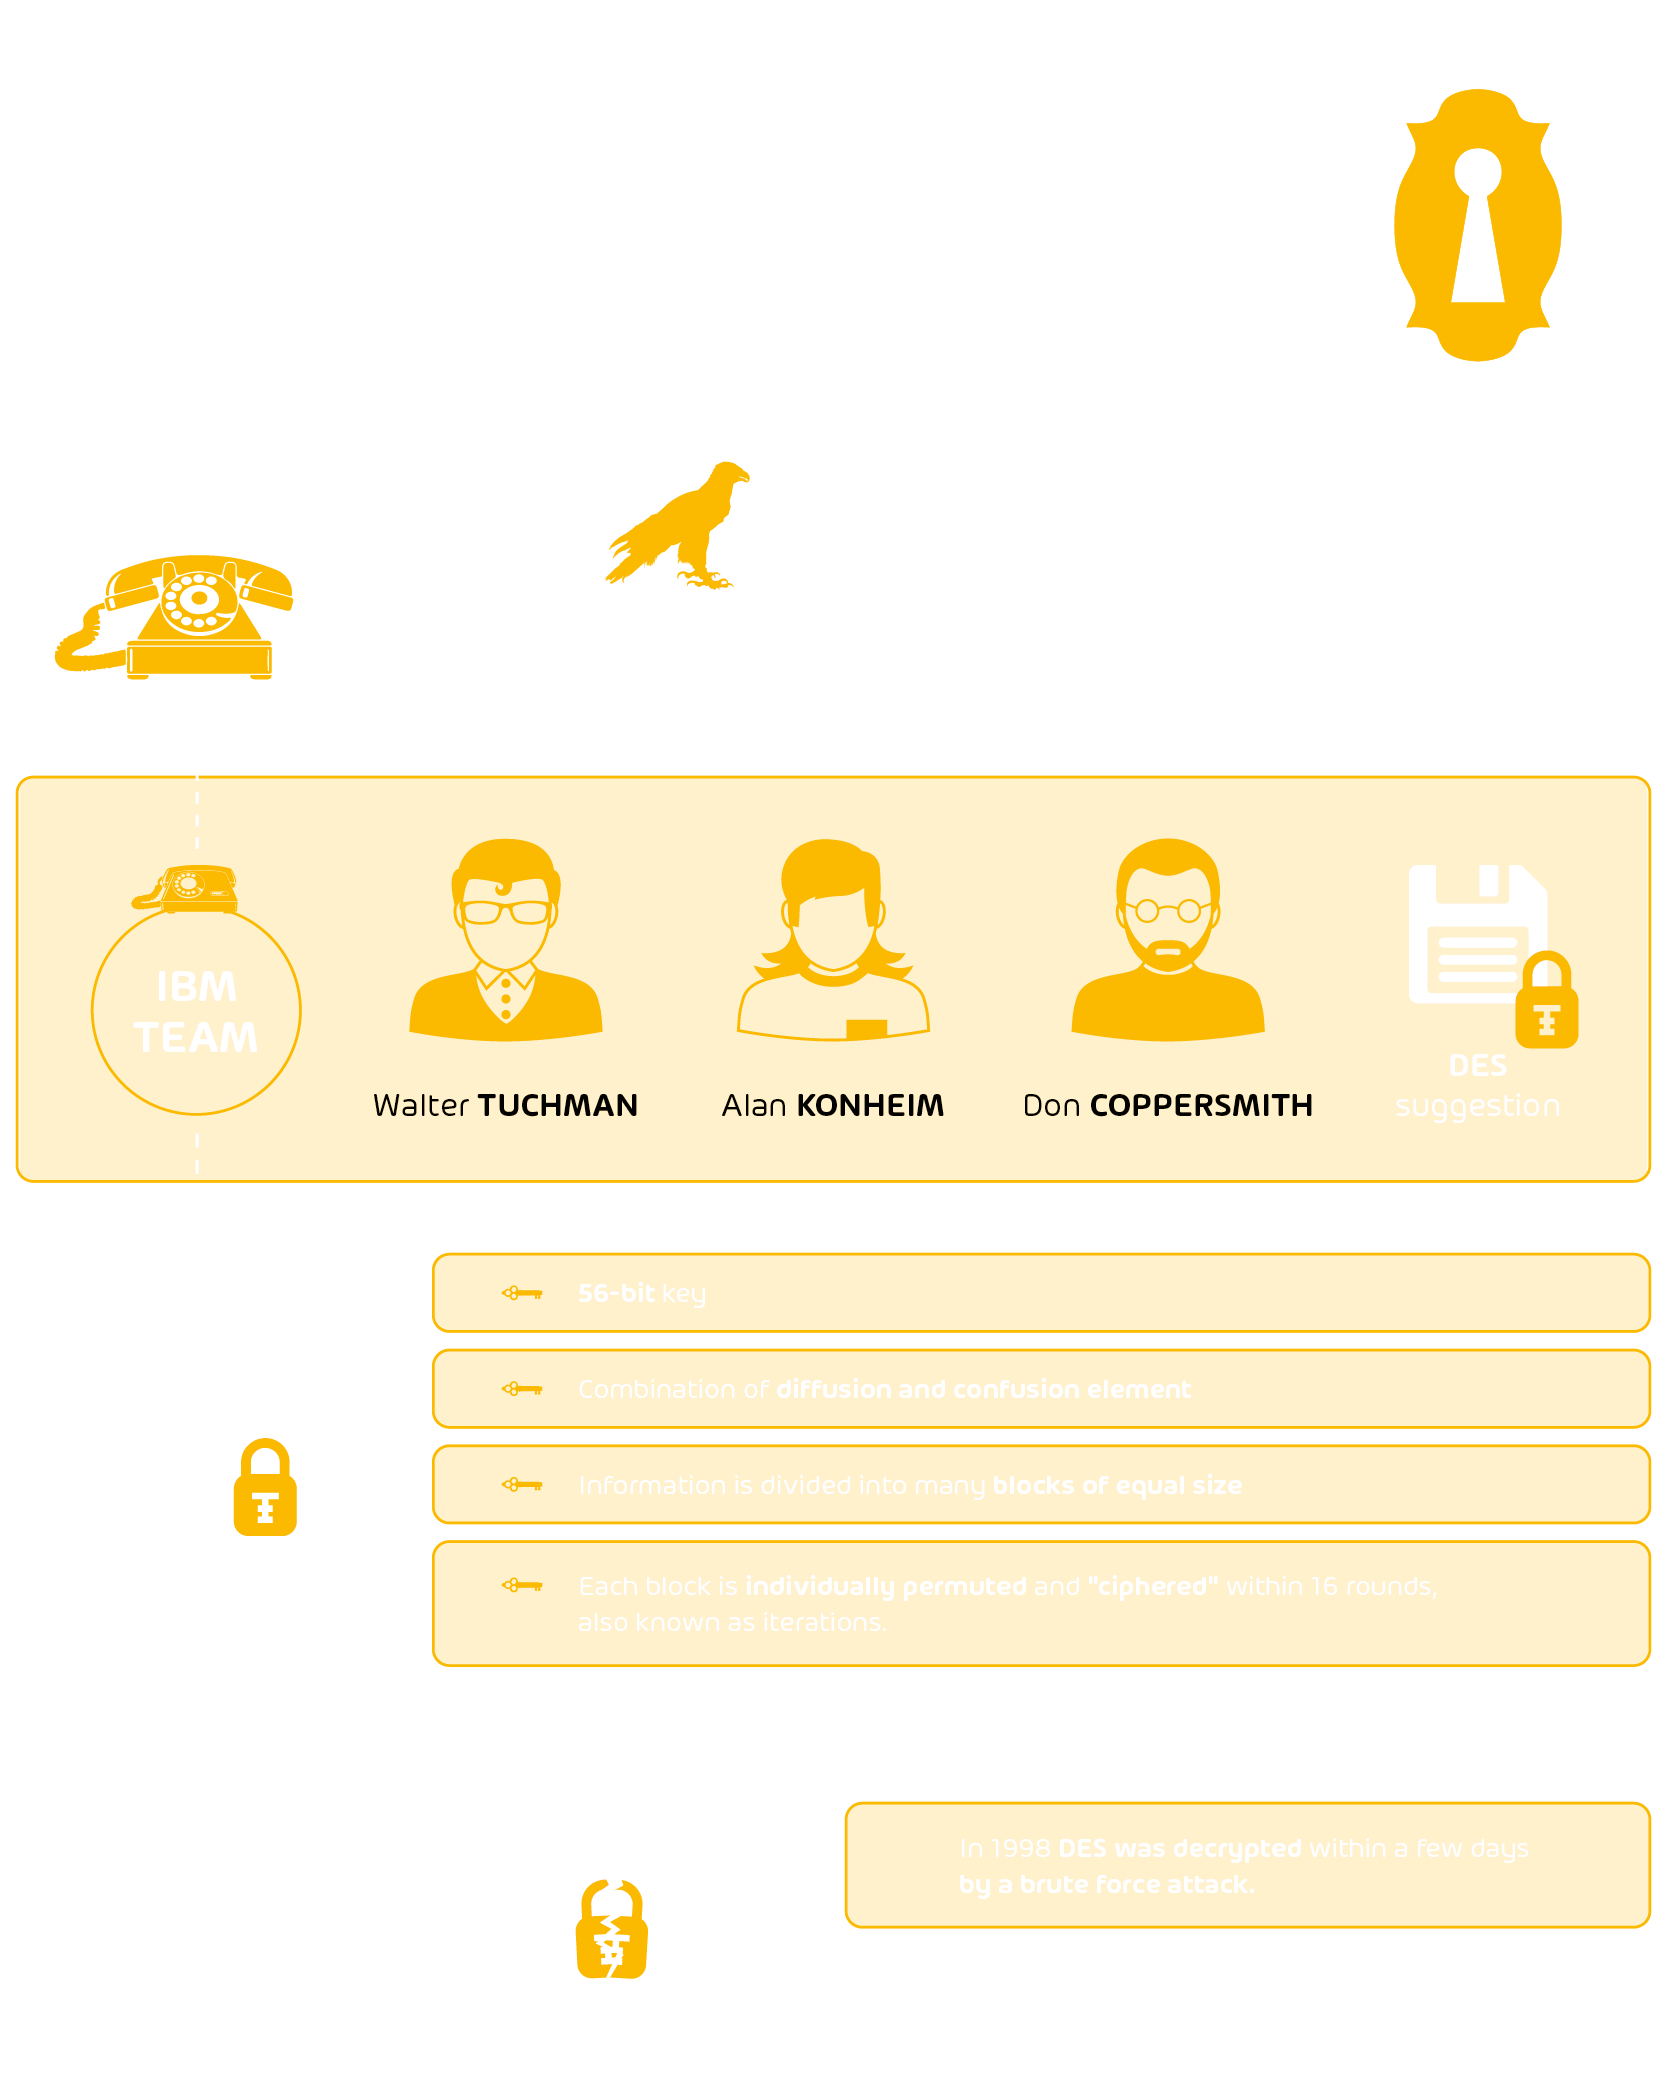 Infographic about Data Encryption Standard